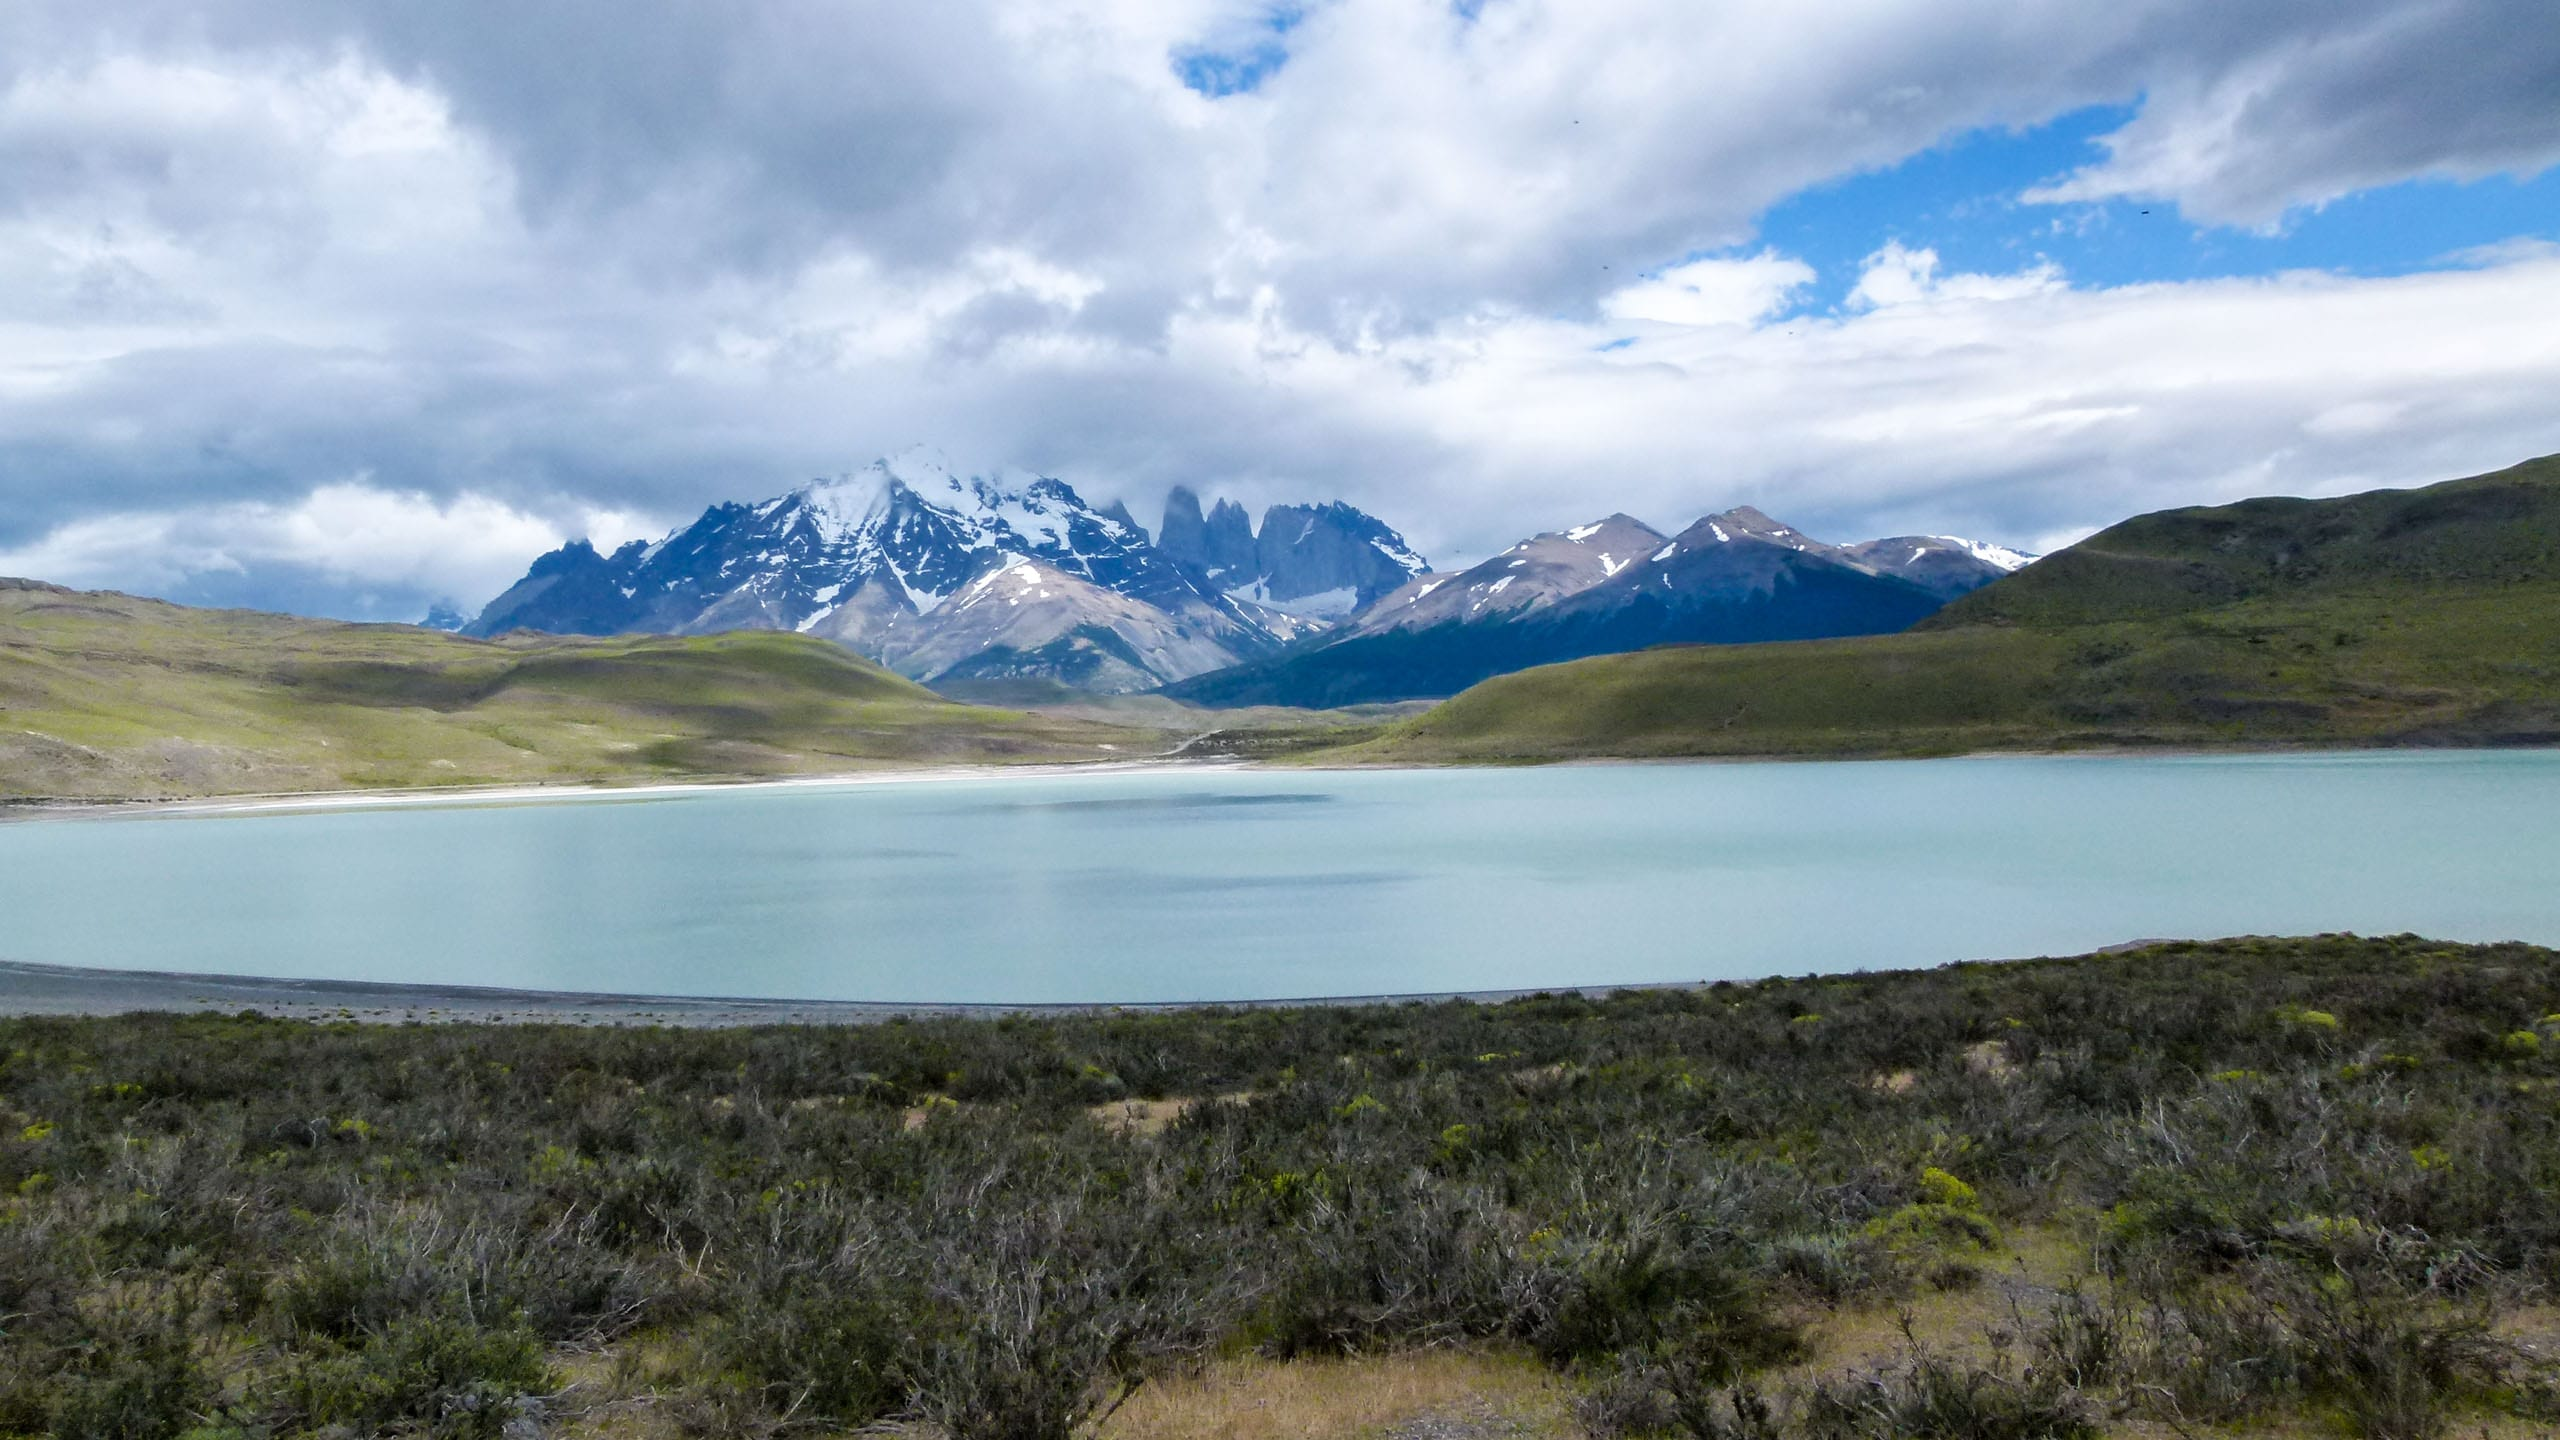 View of Patagonia mountains across lake